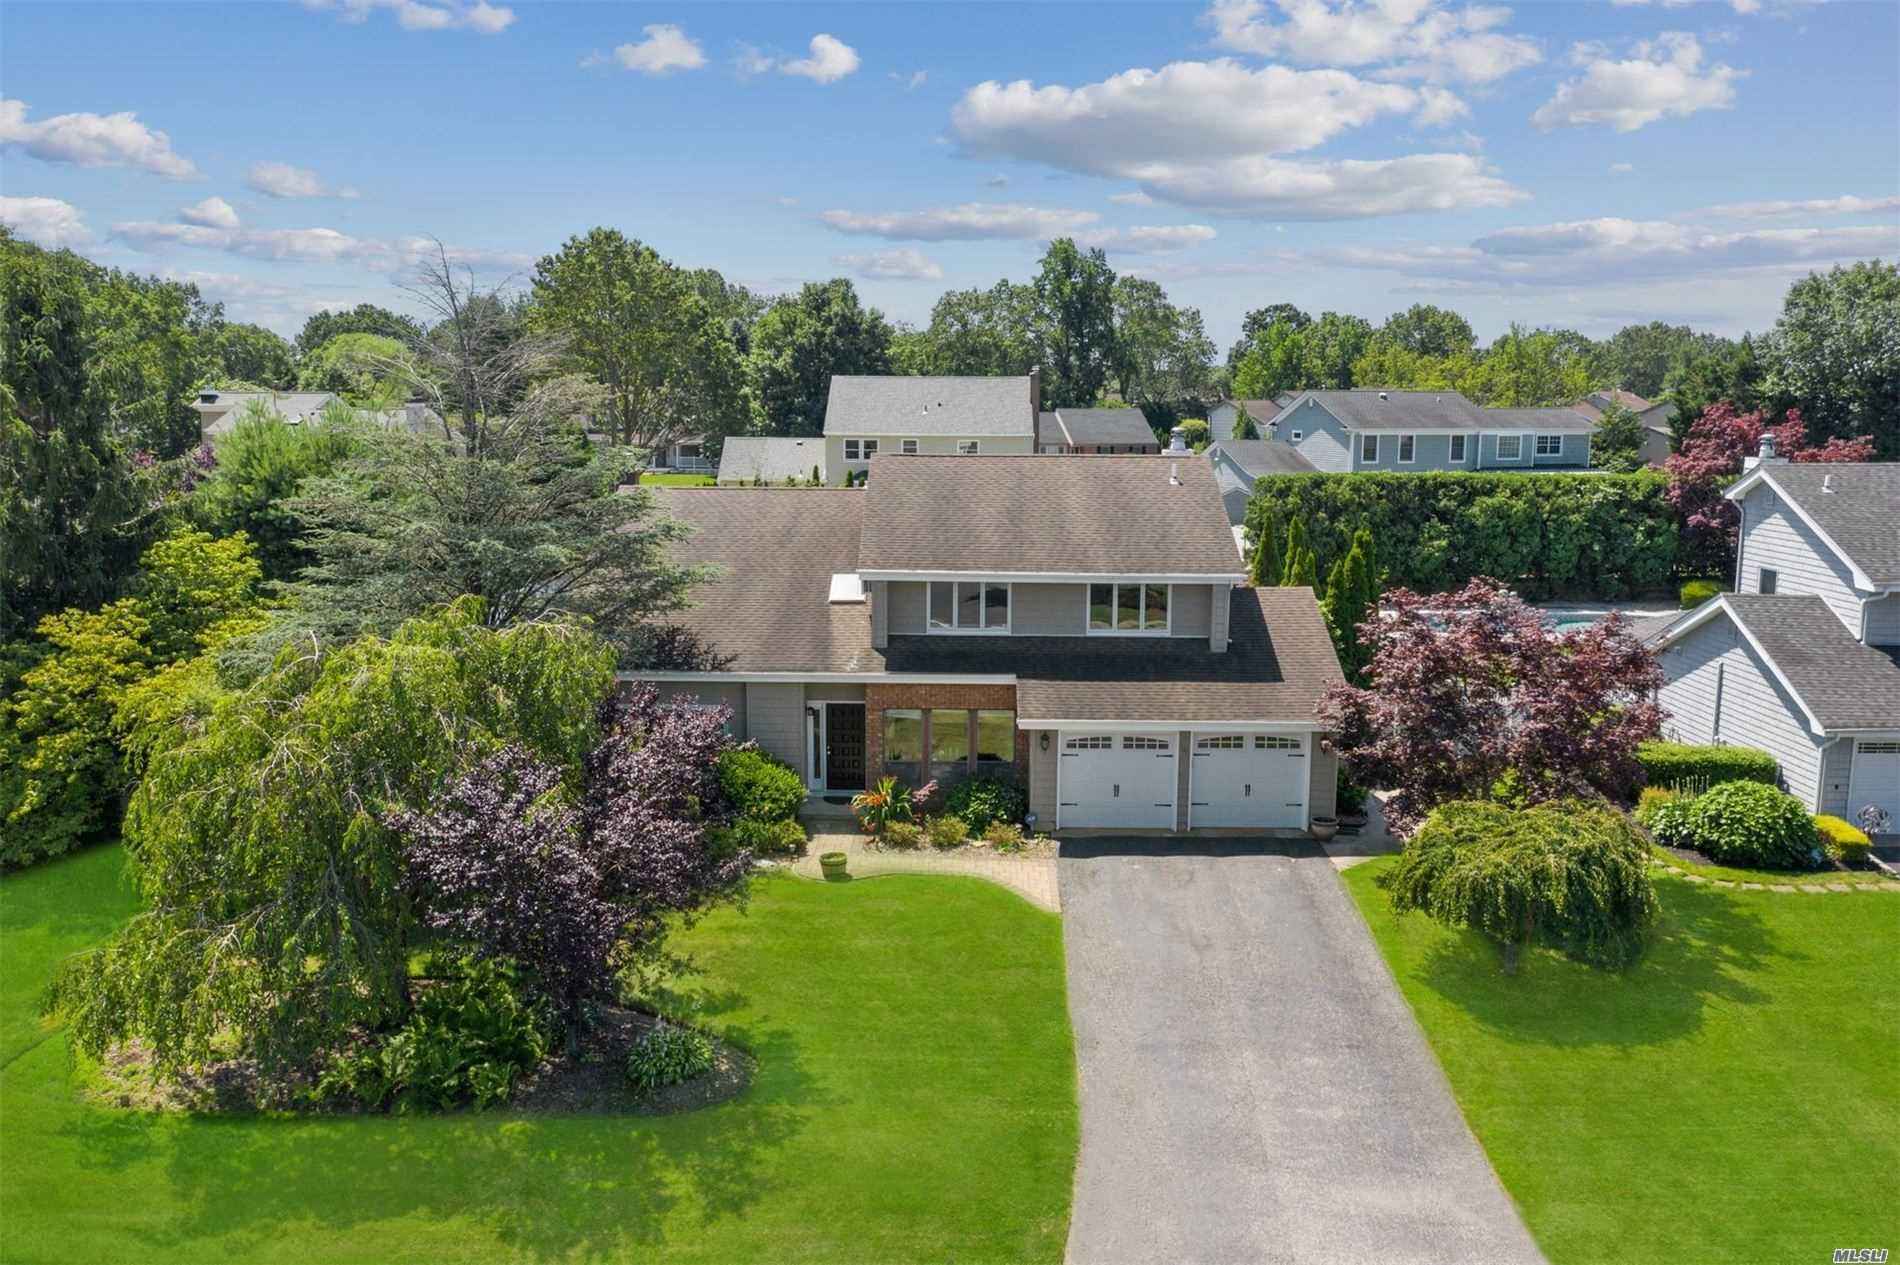 17 Timber Ridge Dr - Commack, New York